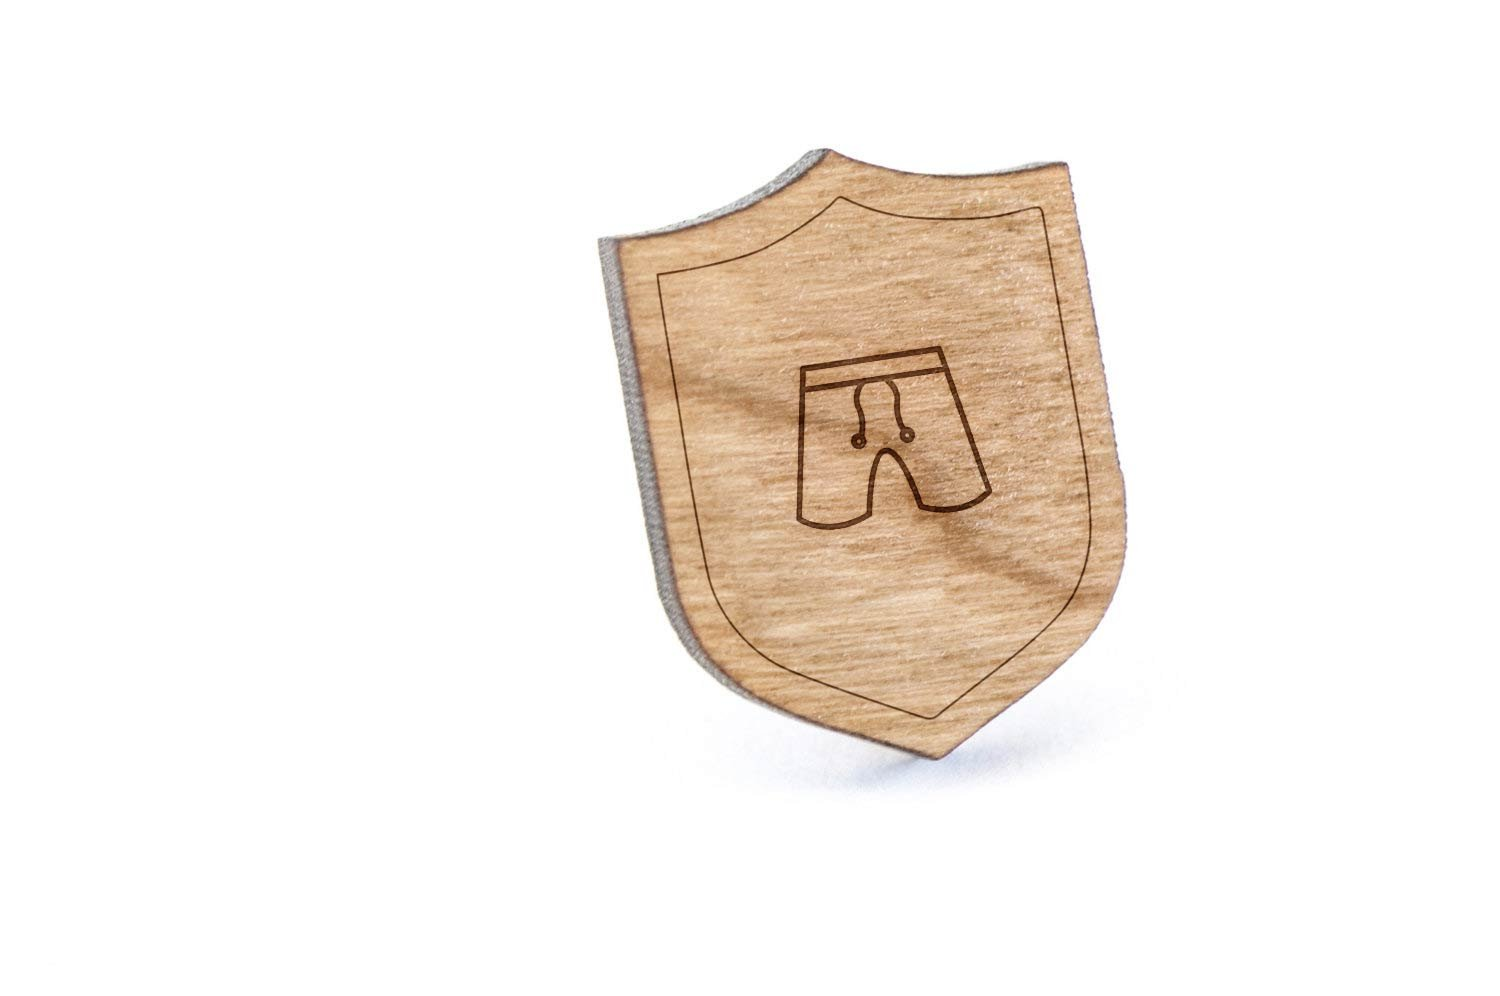 Boardshorts Lapel Pin, Wooden Pin And Tie Tack | Rustic And Minimalistic Groomsmen Gifts And Wedding Accessories